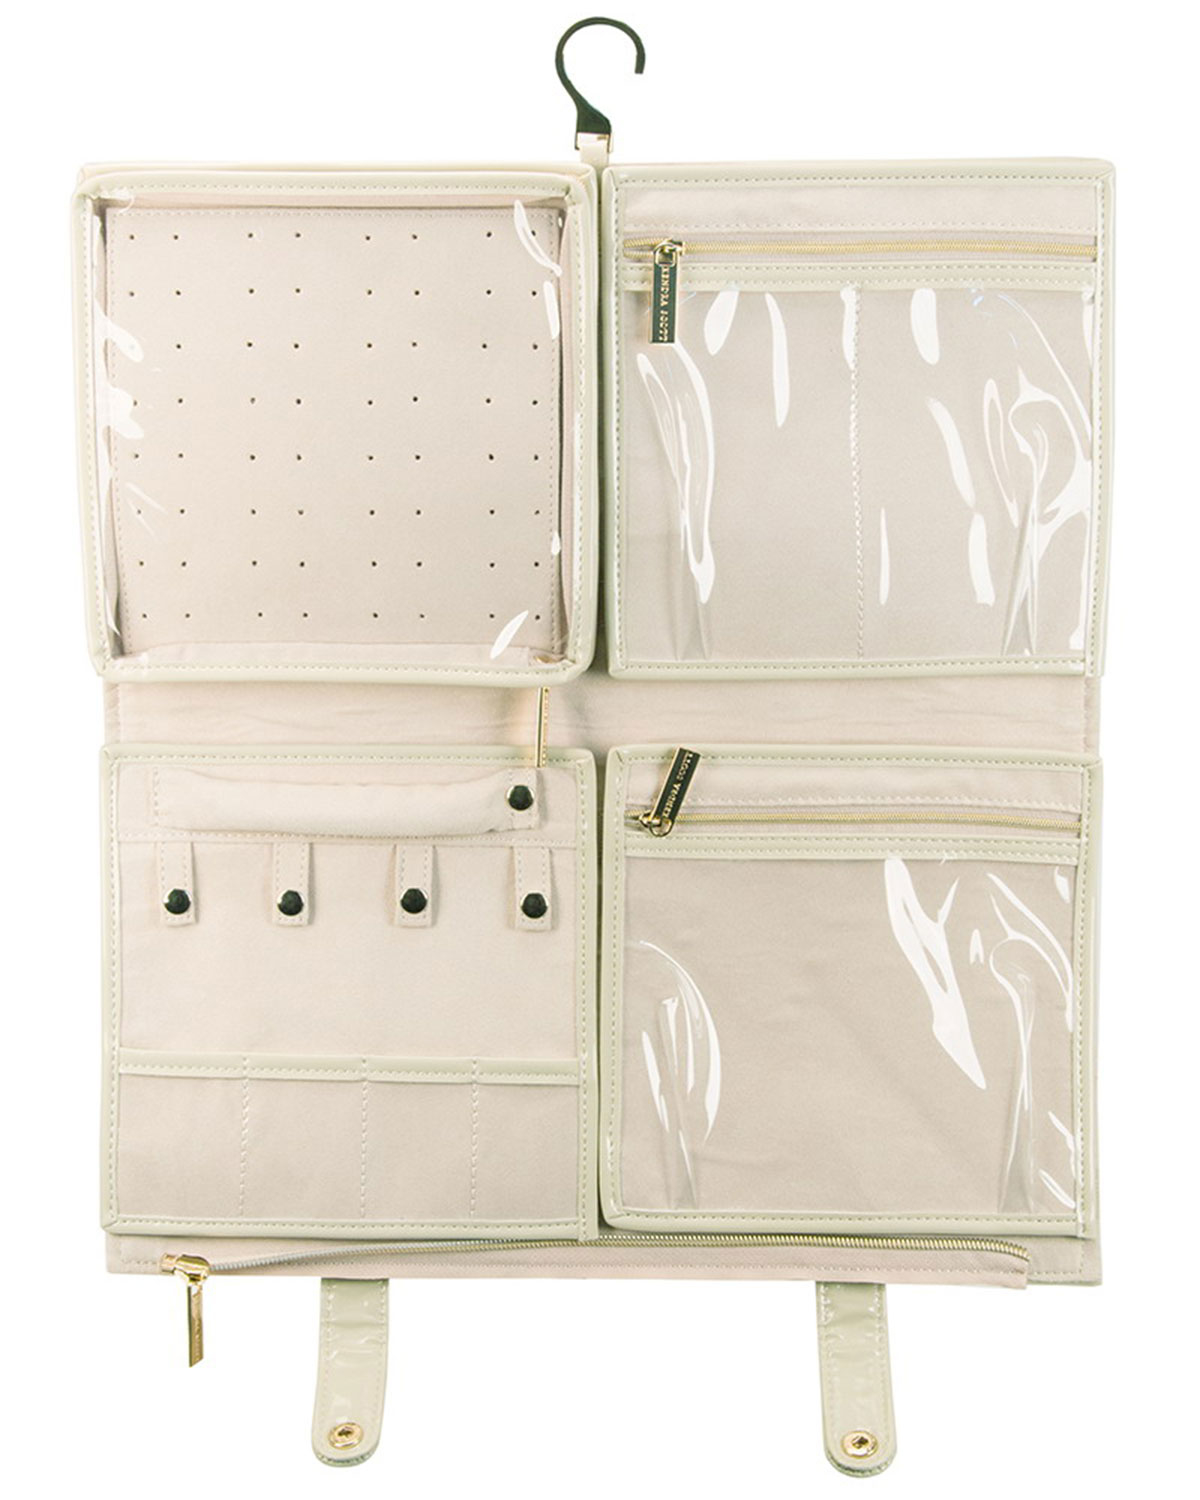 Cynthia Rowley Jewelry Organizer: Kendra Scott Jet-Set Coated Canvas Jewelry Organizer In